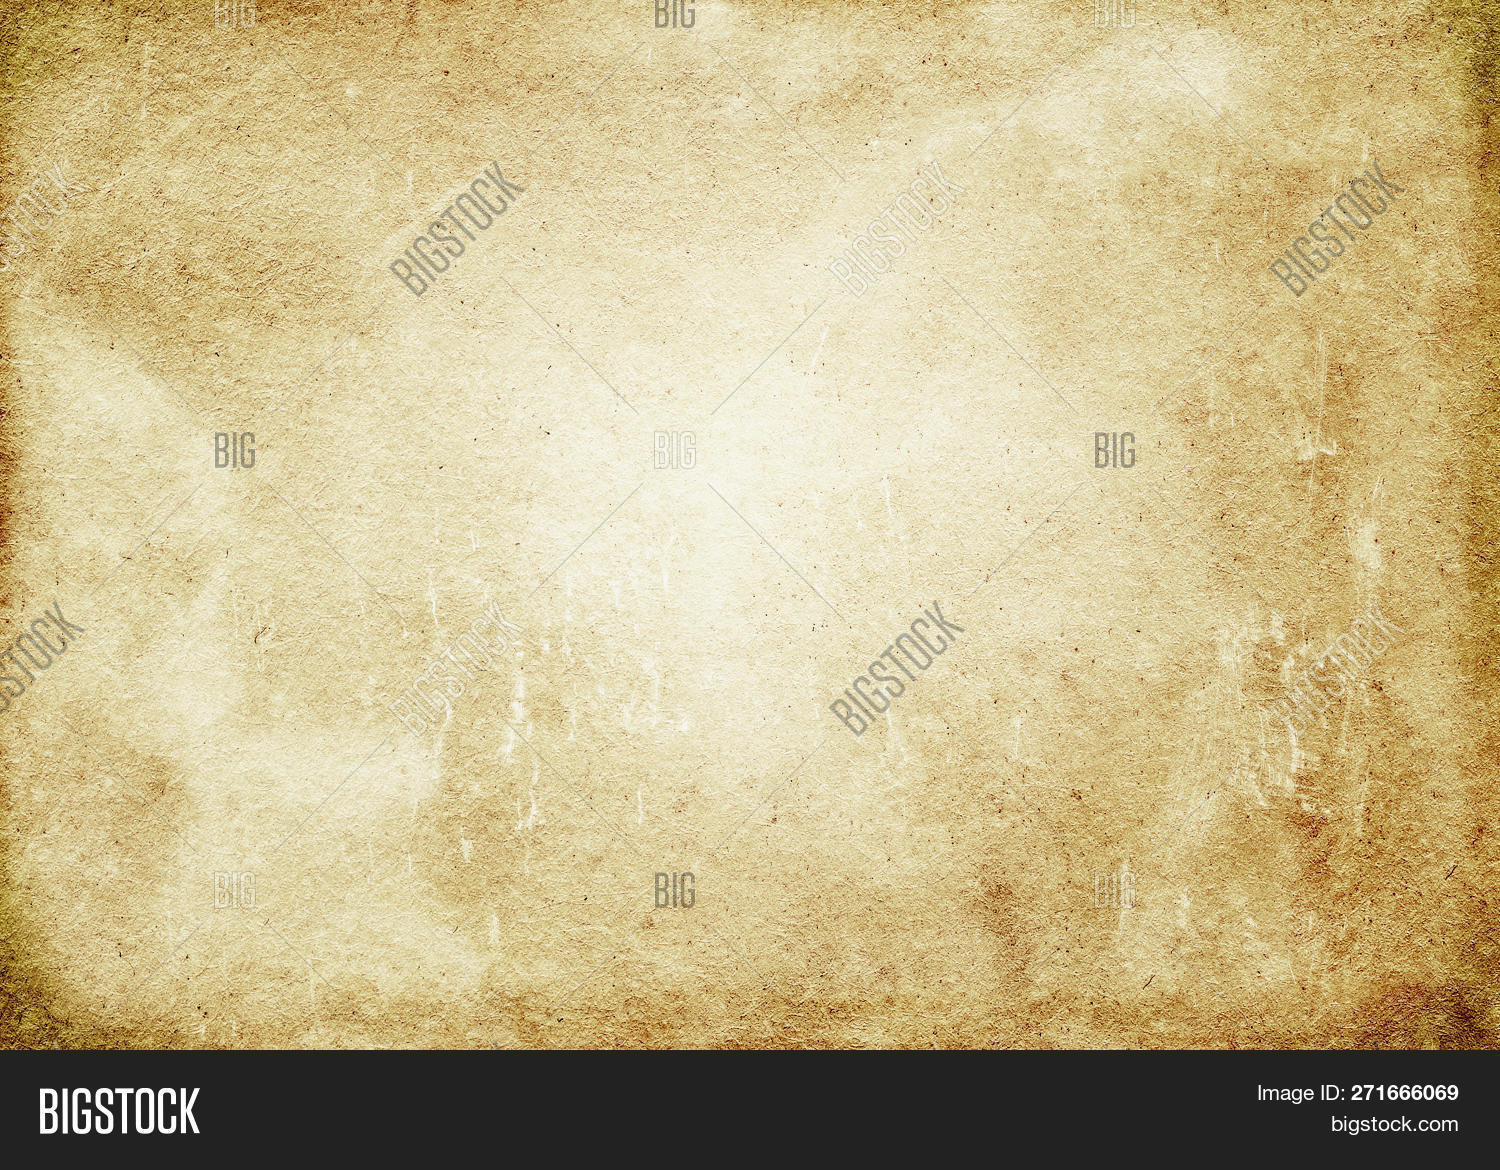 .vintage,Abstract,Fine,Wallpaper,aged,ancient,antique,art,background,beige,blank,brown,crumpled,damaged,decay,design,grunge,material,old,on,paper,parchment,pattern,retro,rough,scratches,stains,streaks,texture,the,wall